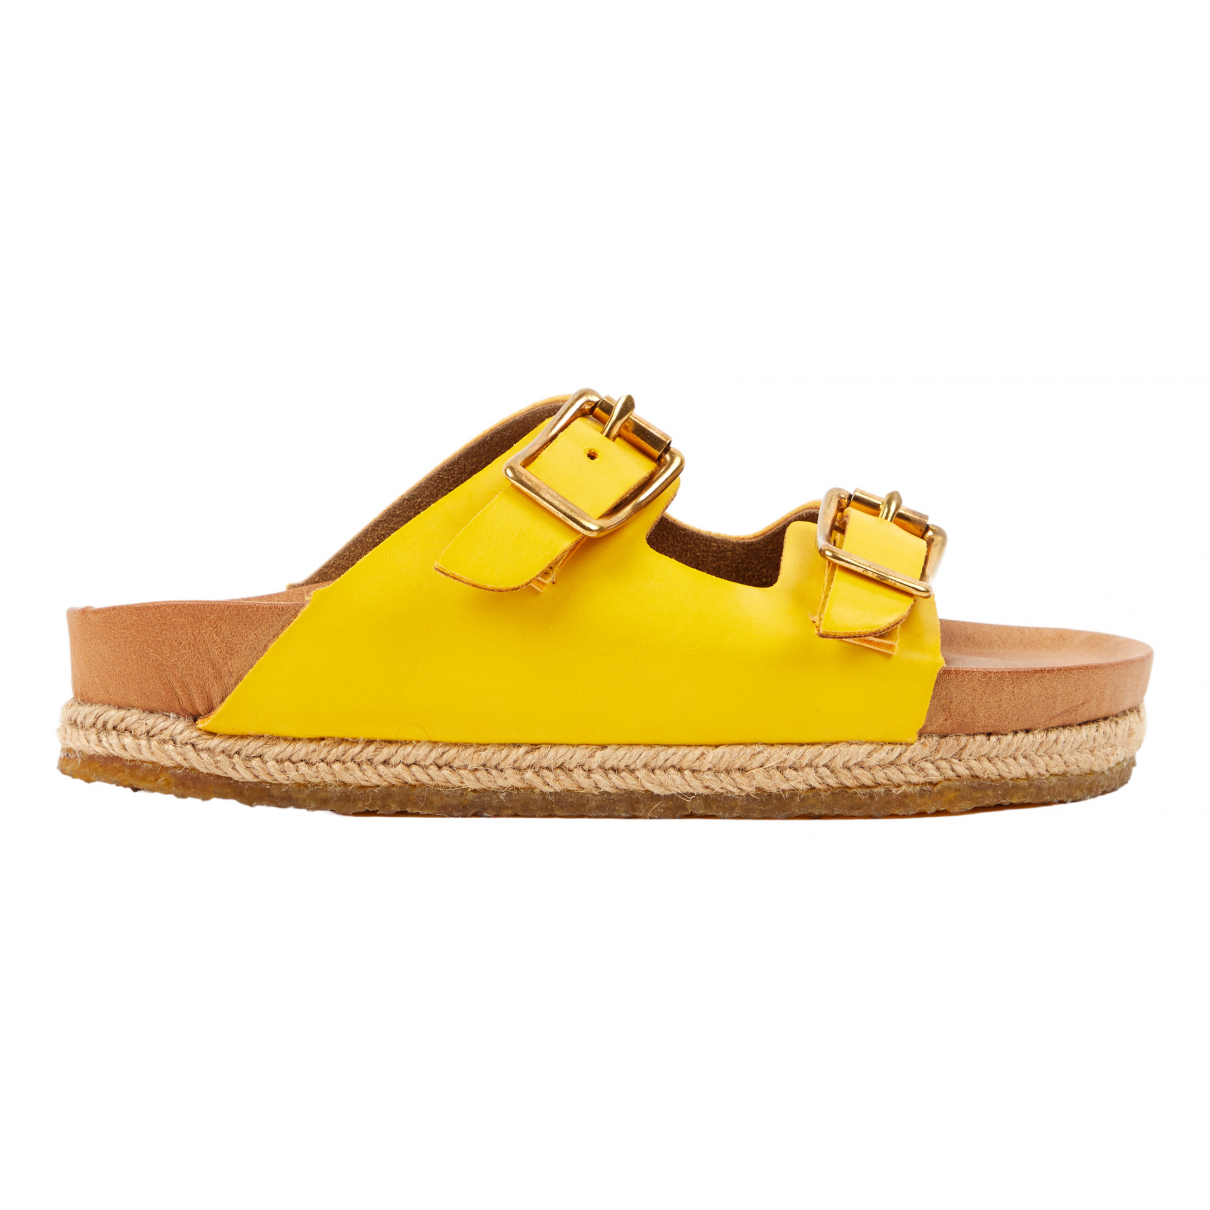 Yuketen \N Yellow Leather Sandals for Women 36 EU